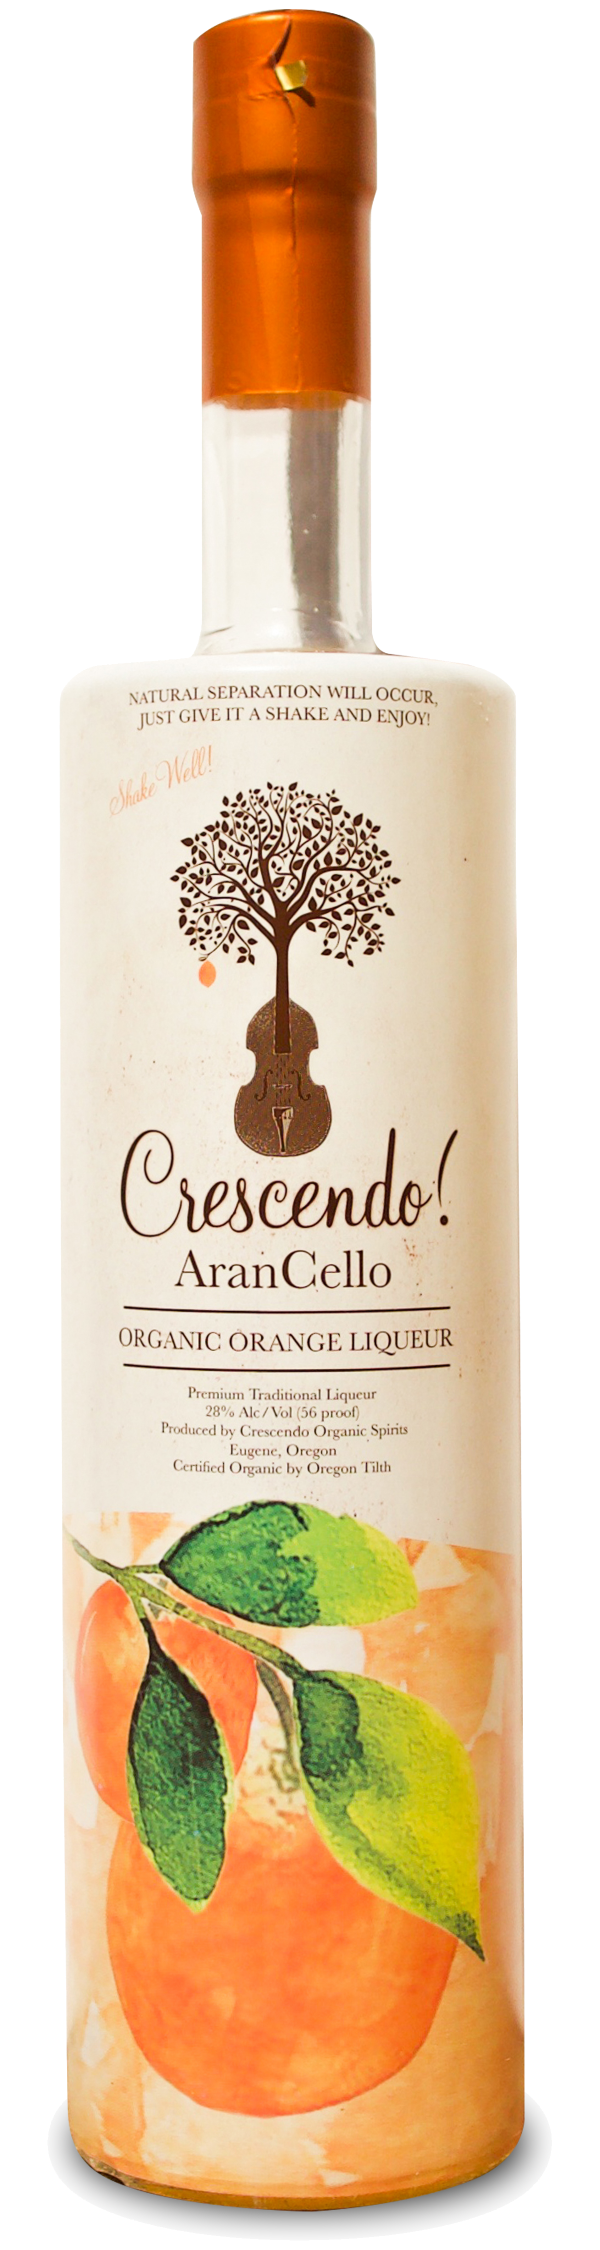 Crescendo Arancello Organic Orange Liqueur